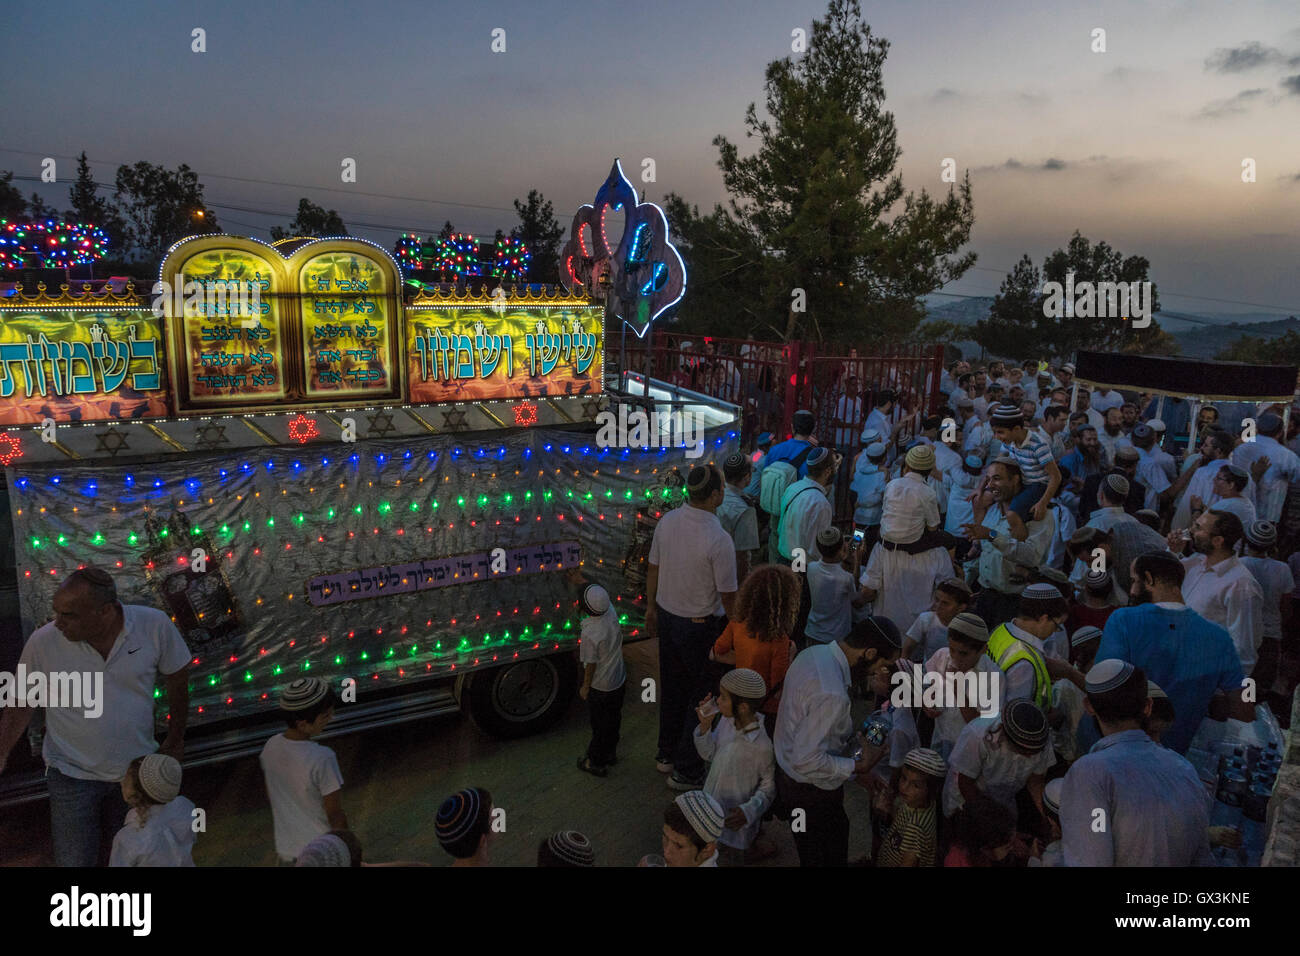 Neria, Israel. 15th September, 2016. Neria, Israel/West Bank. A parade celebrating the inauguration of a Torah scroll - Stock Image